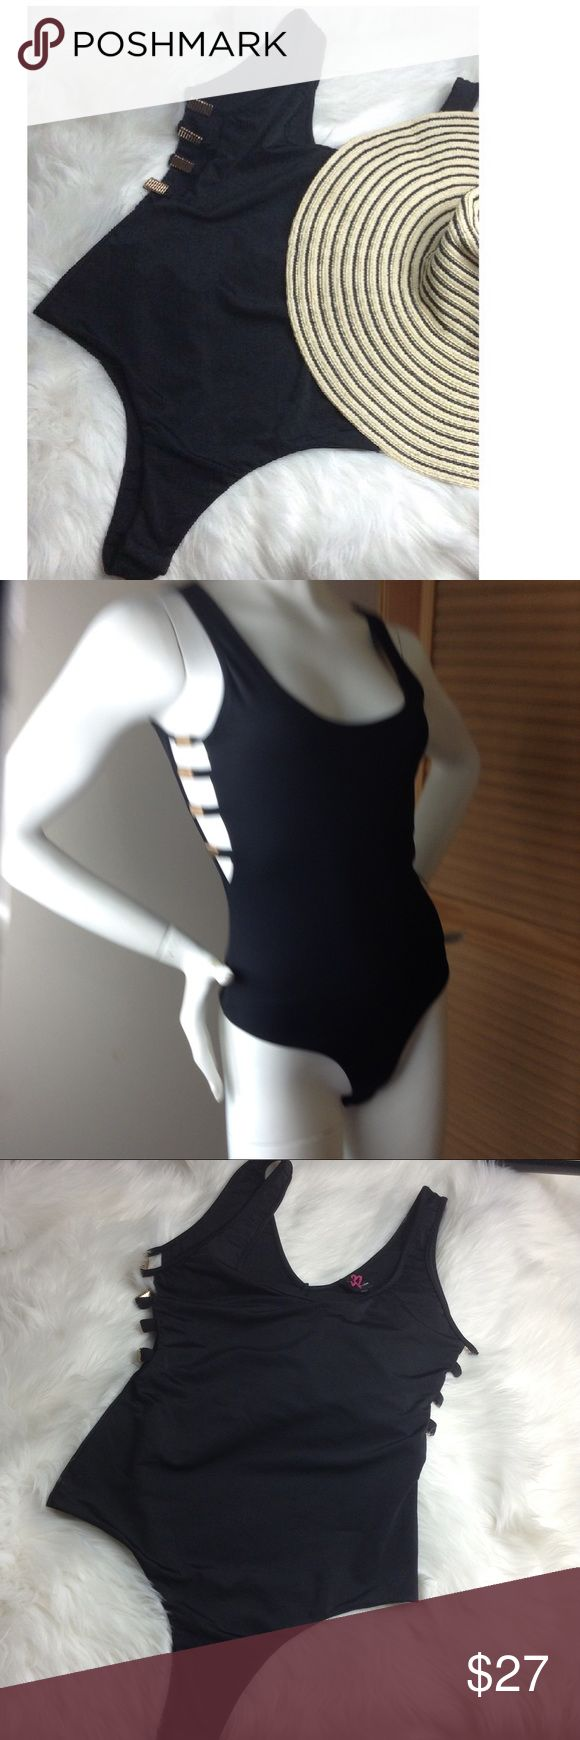 """Bebe Swimsuit Bebe Swimsuit, black ▪️ one piece ▪️ snap closure ▪️ open sides with gold hardware ▪️size tag: petite small (I think it runs large - or size tag is wrong) my mannequin is a 2/4 and its loose on her) ▪️▪chest 28"""", waist 24"""", torso Appx. 27"""" (shoulder to snap closure)️▪️ bundle your ❤️ and save ❤️ bebe Swim One Pieces"""